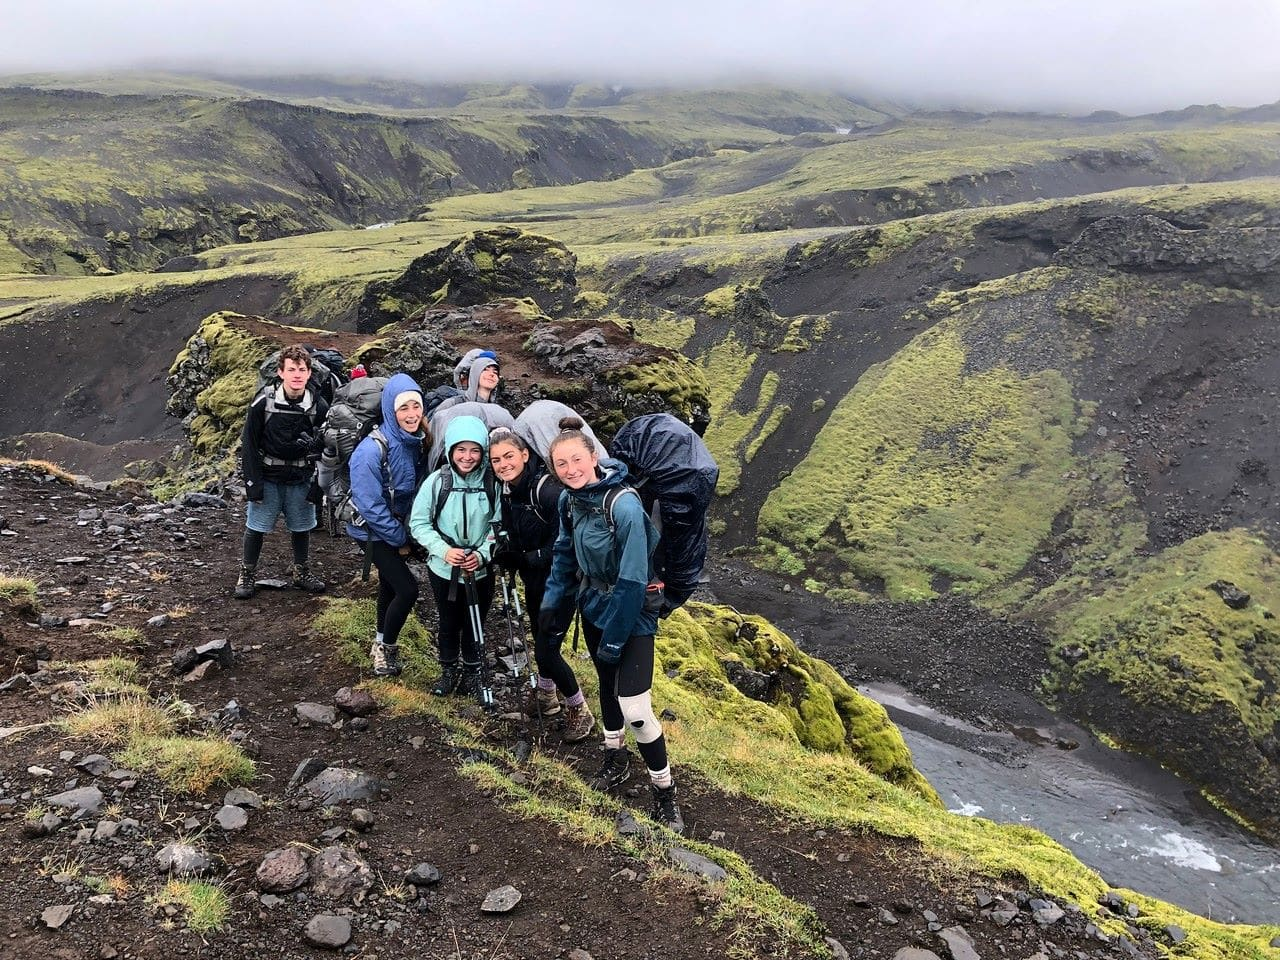 Rain can't keep our campers from posing for a group photo when on a hiking trip in Iceland this summer